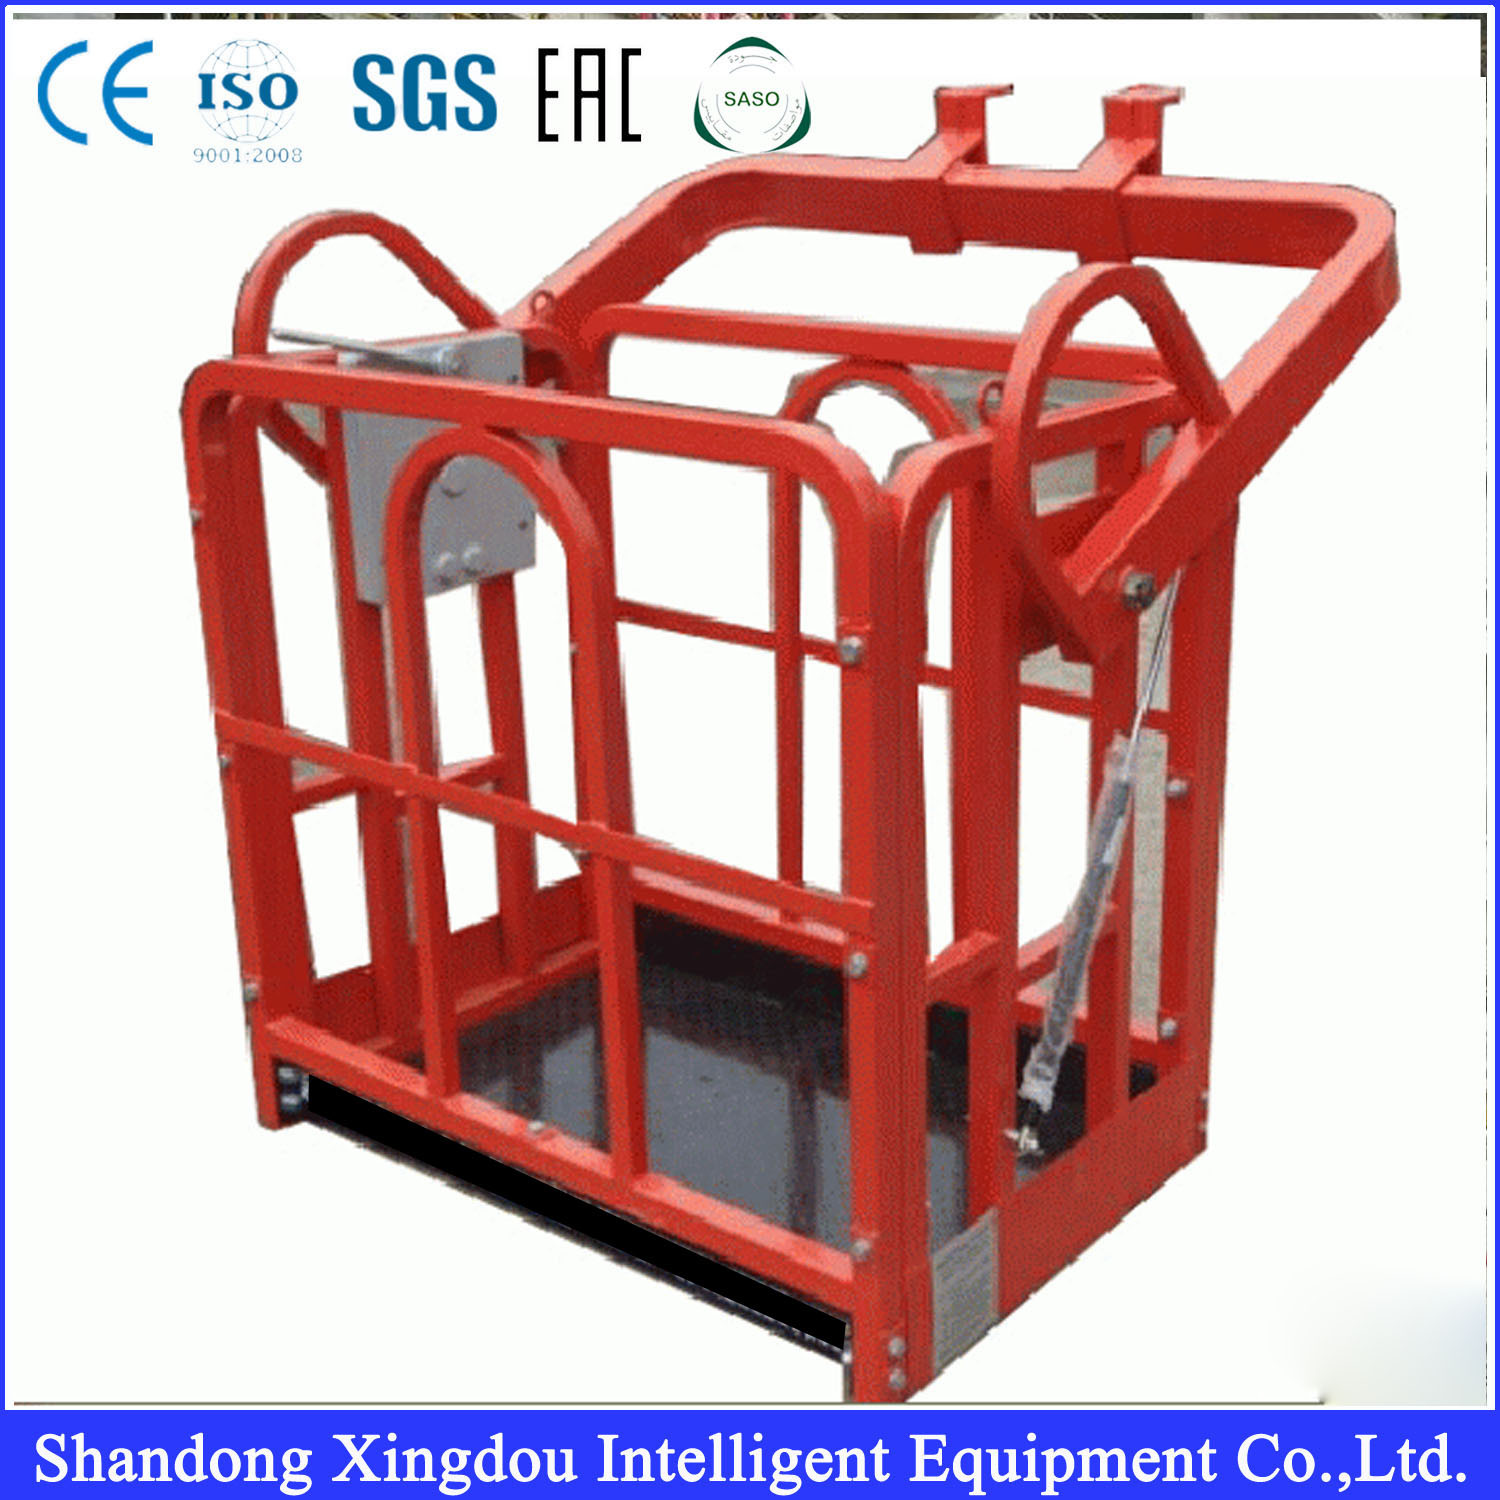 Portable Lift Platform Zlp630 Suspended Platform Lift Platform Construction Gondola